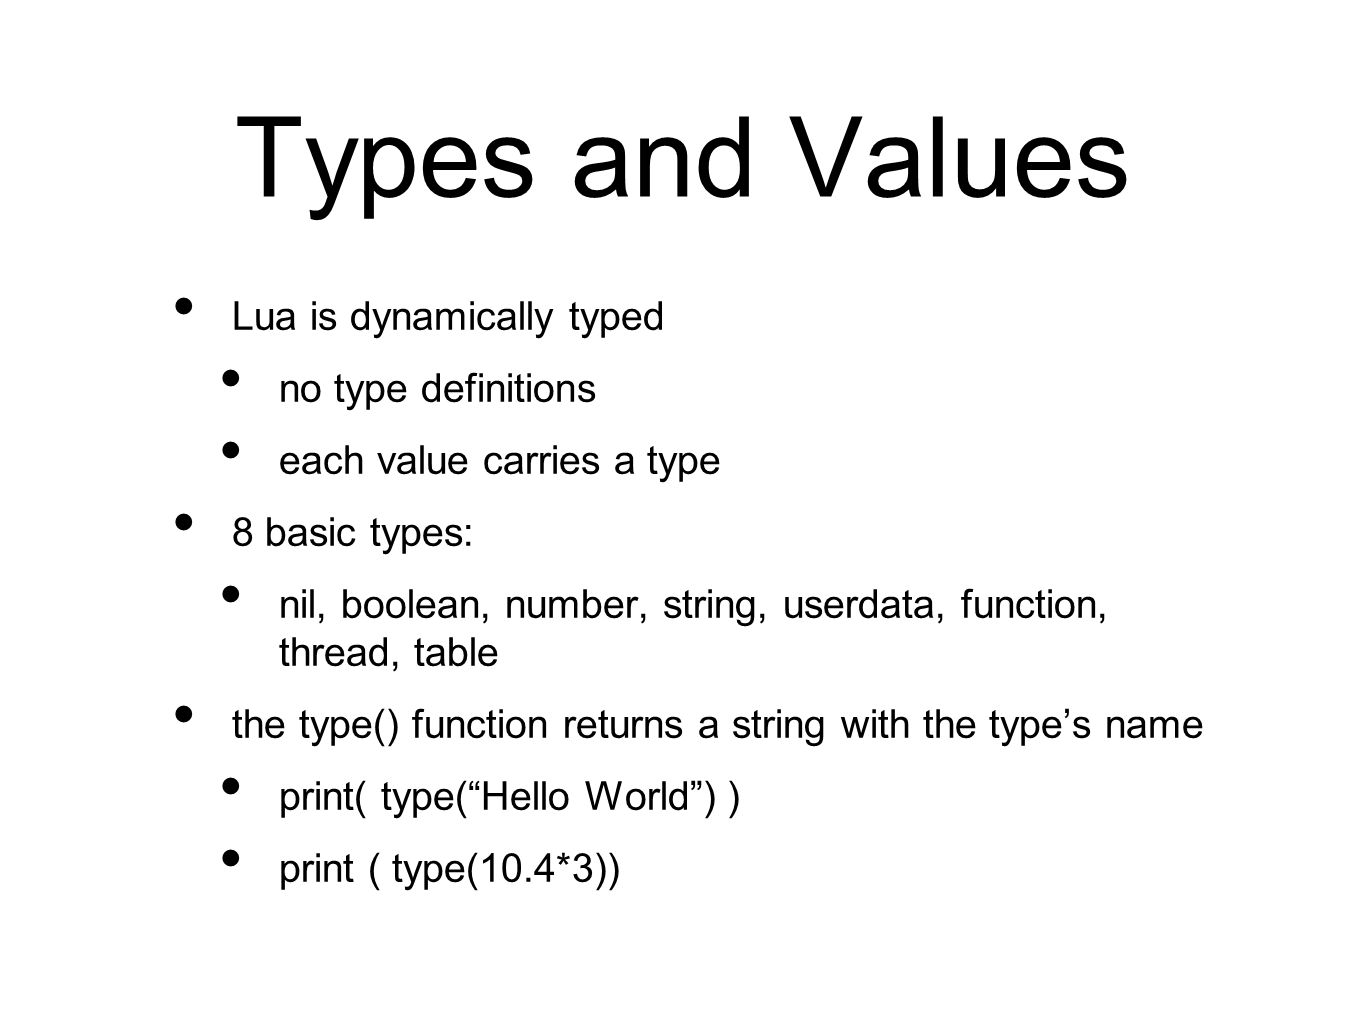 Types and Values Lua is dynamically typed no type definitions each value carries a type 8 basic types: nil, boolean, number, string, userdata, function, thread, table the type() function returns a string with the types name print( type(Hello World) ) print ( type(10.4*3))